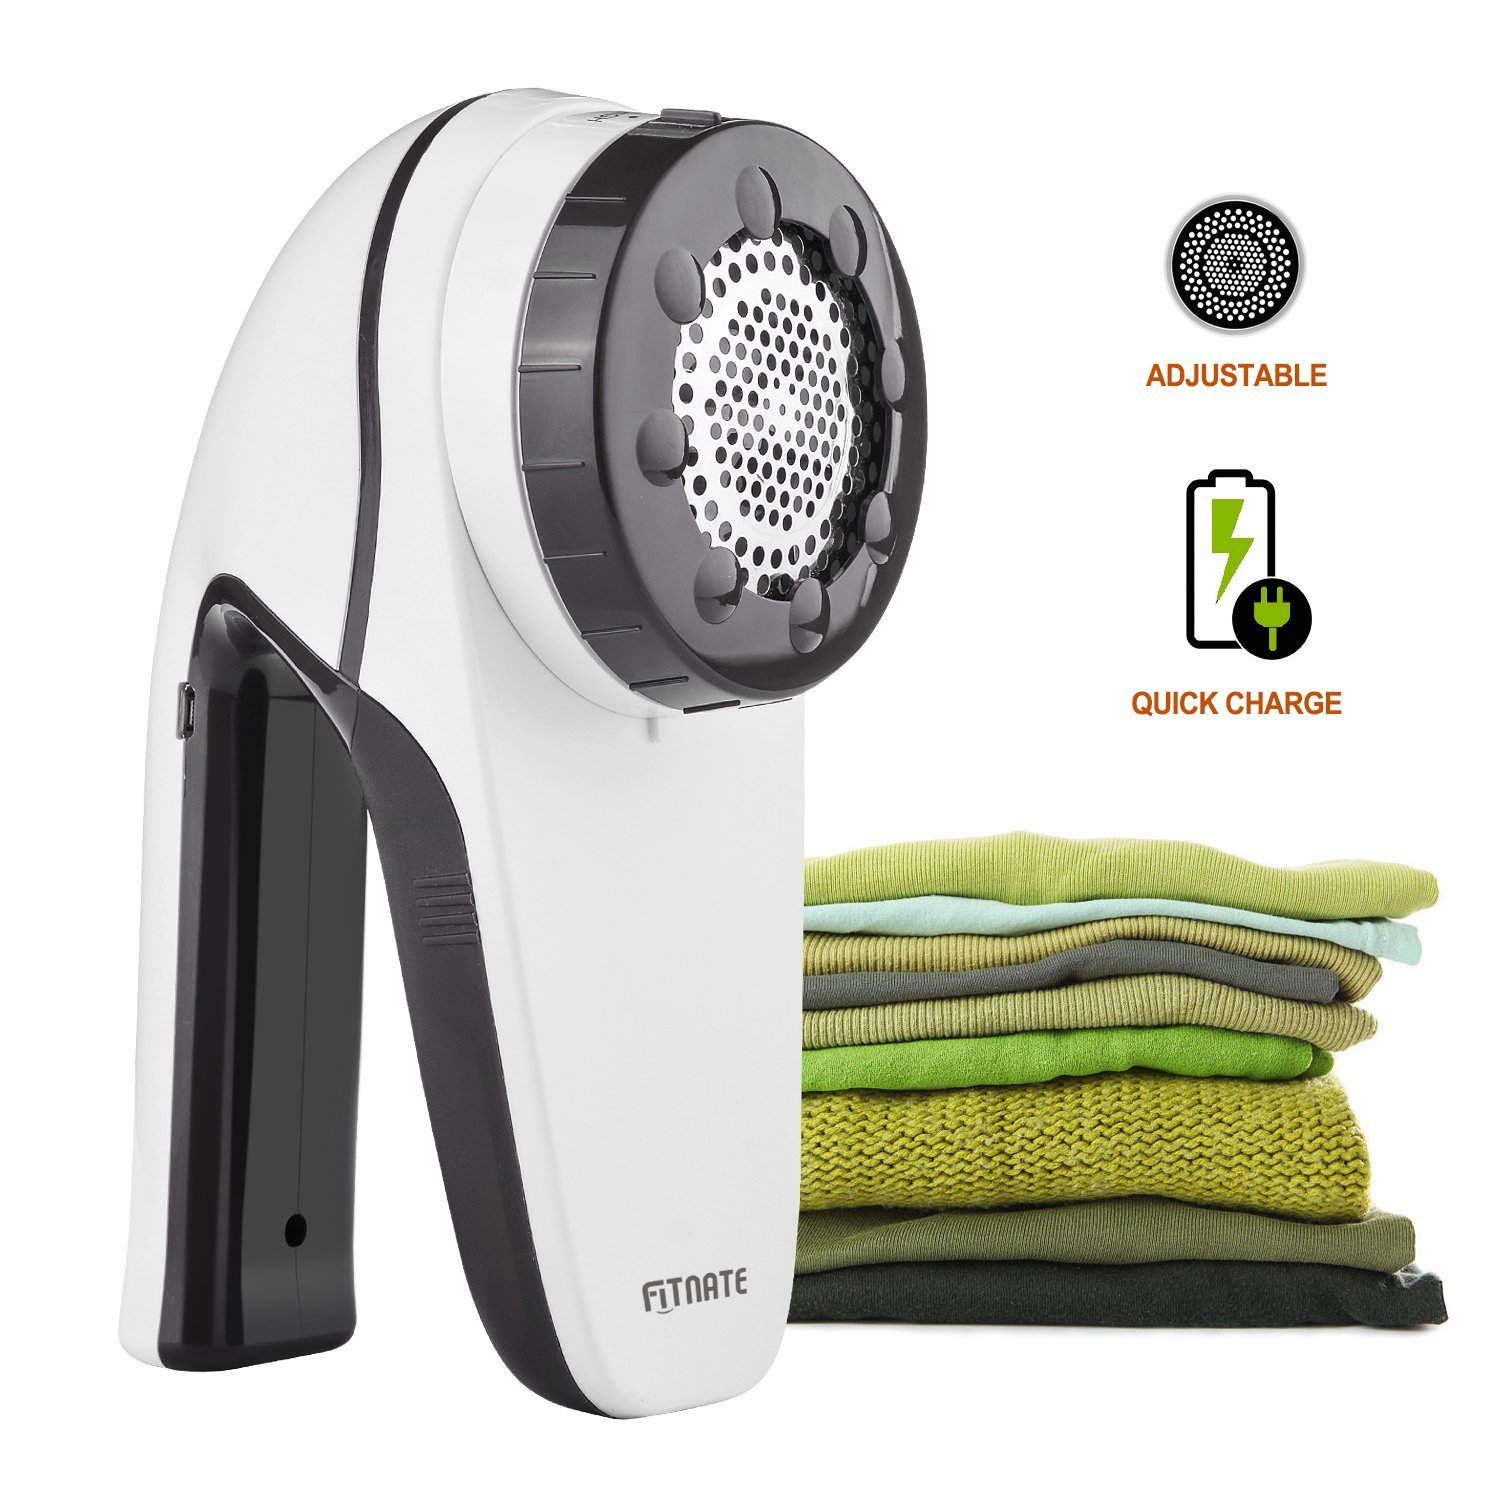 Fitnate The New Upgrade Electric Lint Remover Fabric Shaver Fabric Defuzzer Lint Shaver Clothes Trimmer with USB Cable for Charging, Rechargeable Clothes Fuzz Pill Sweater Shaver with Six Blades